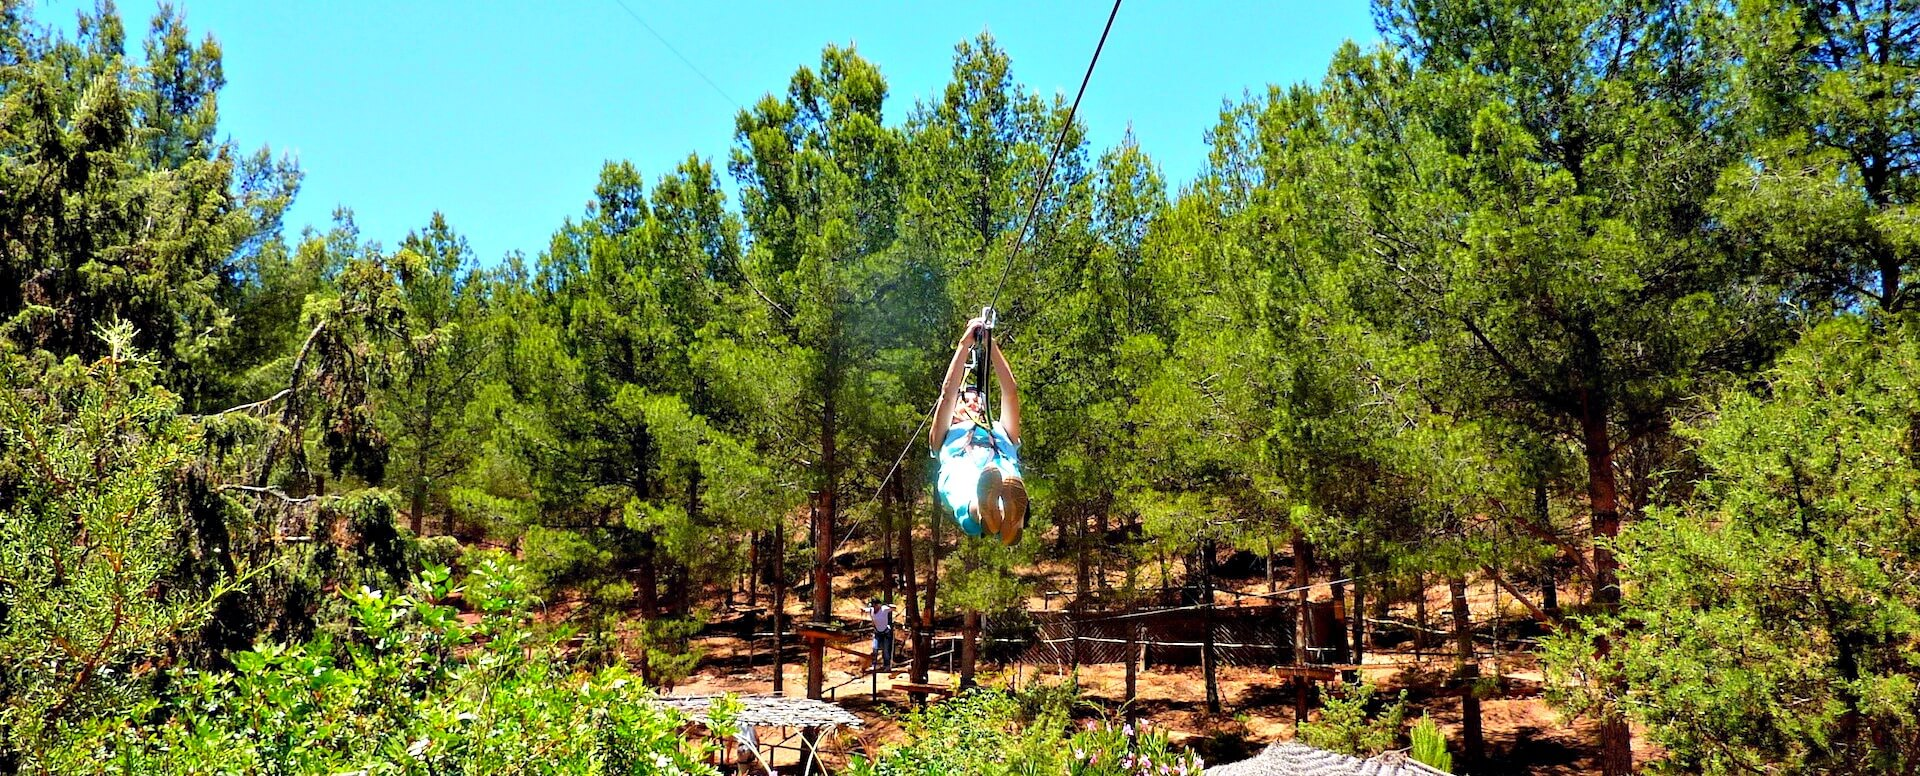 Adventure awaits in the trees - Marrakech